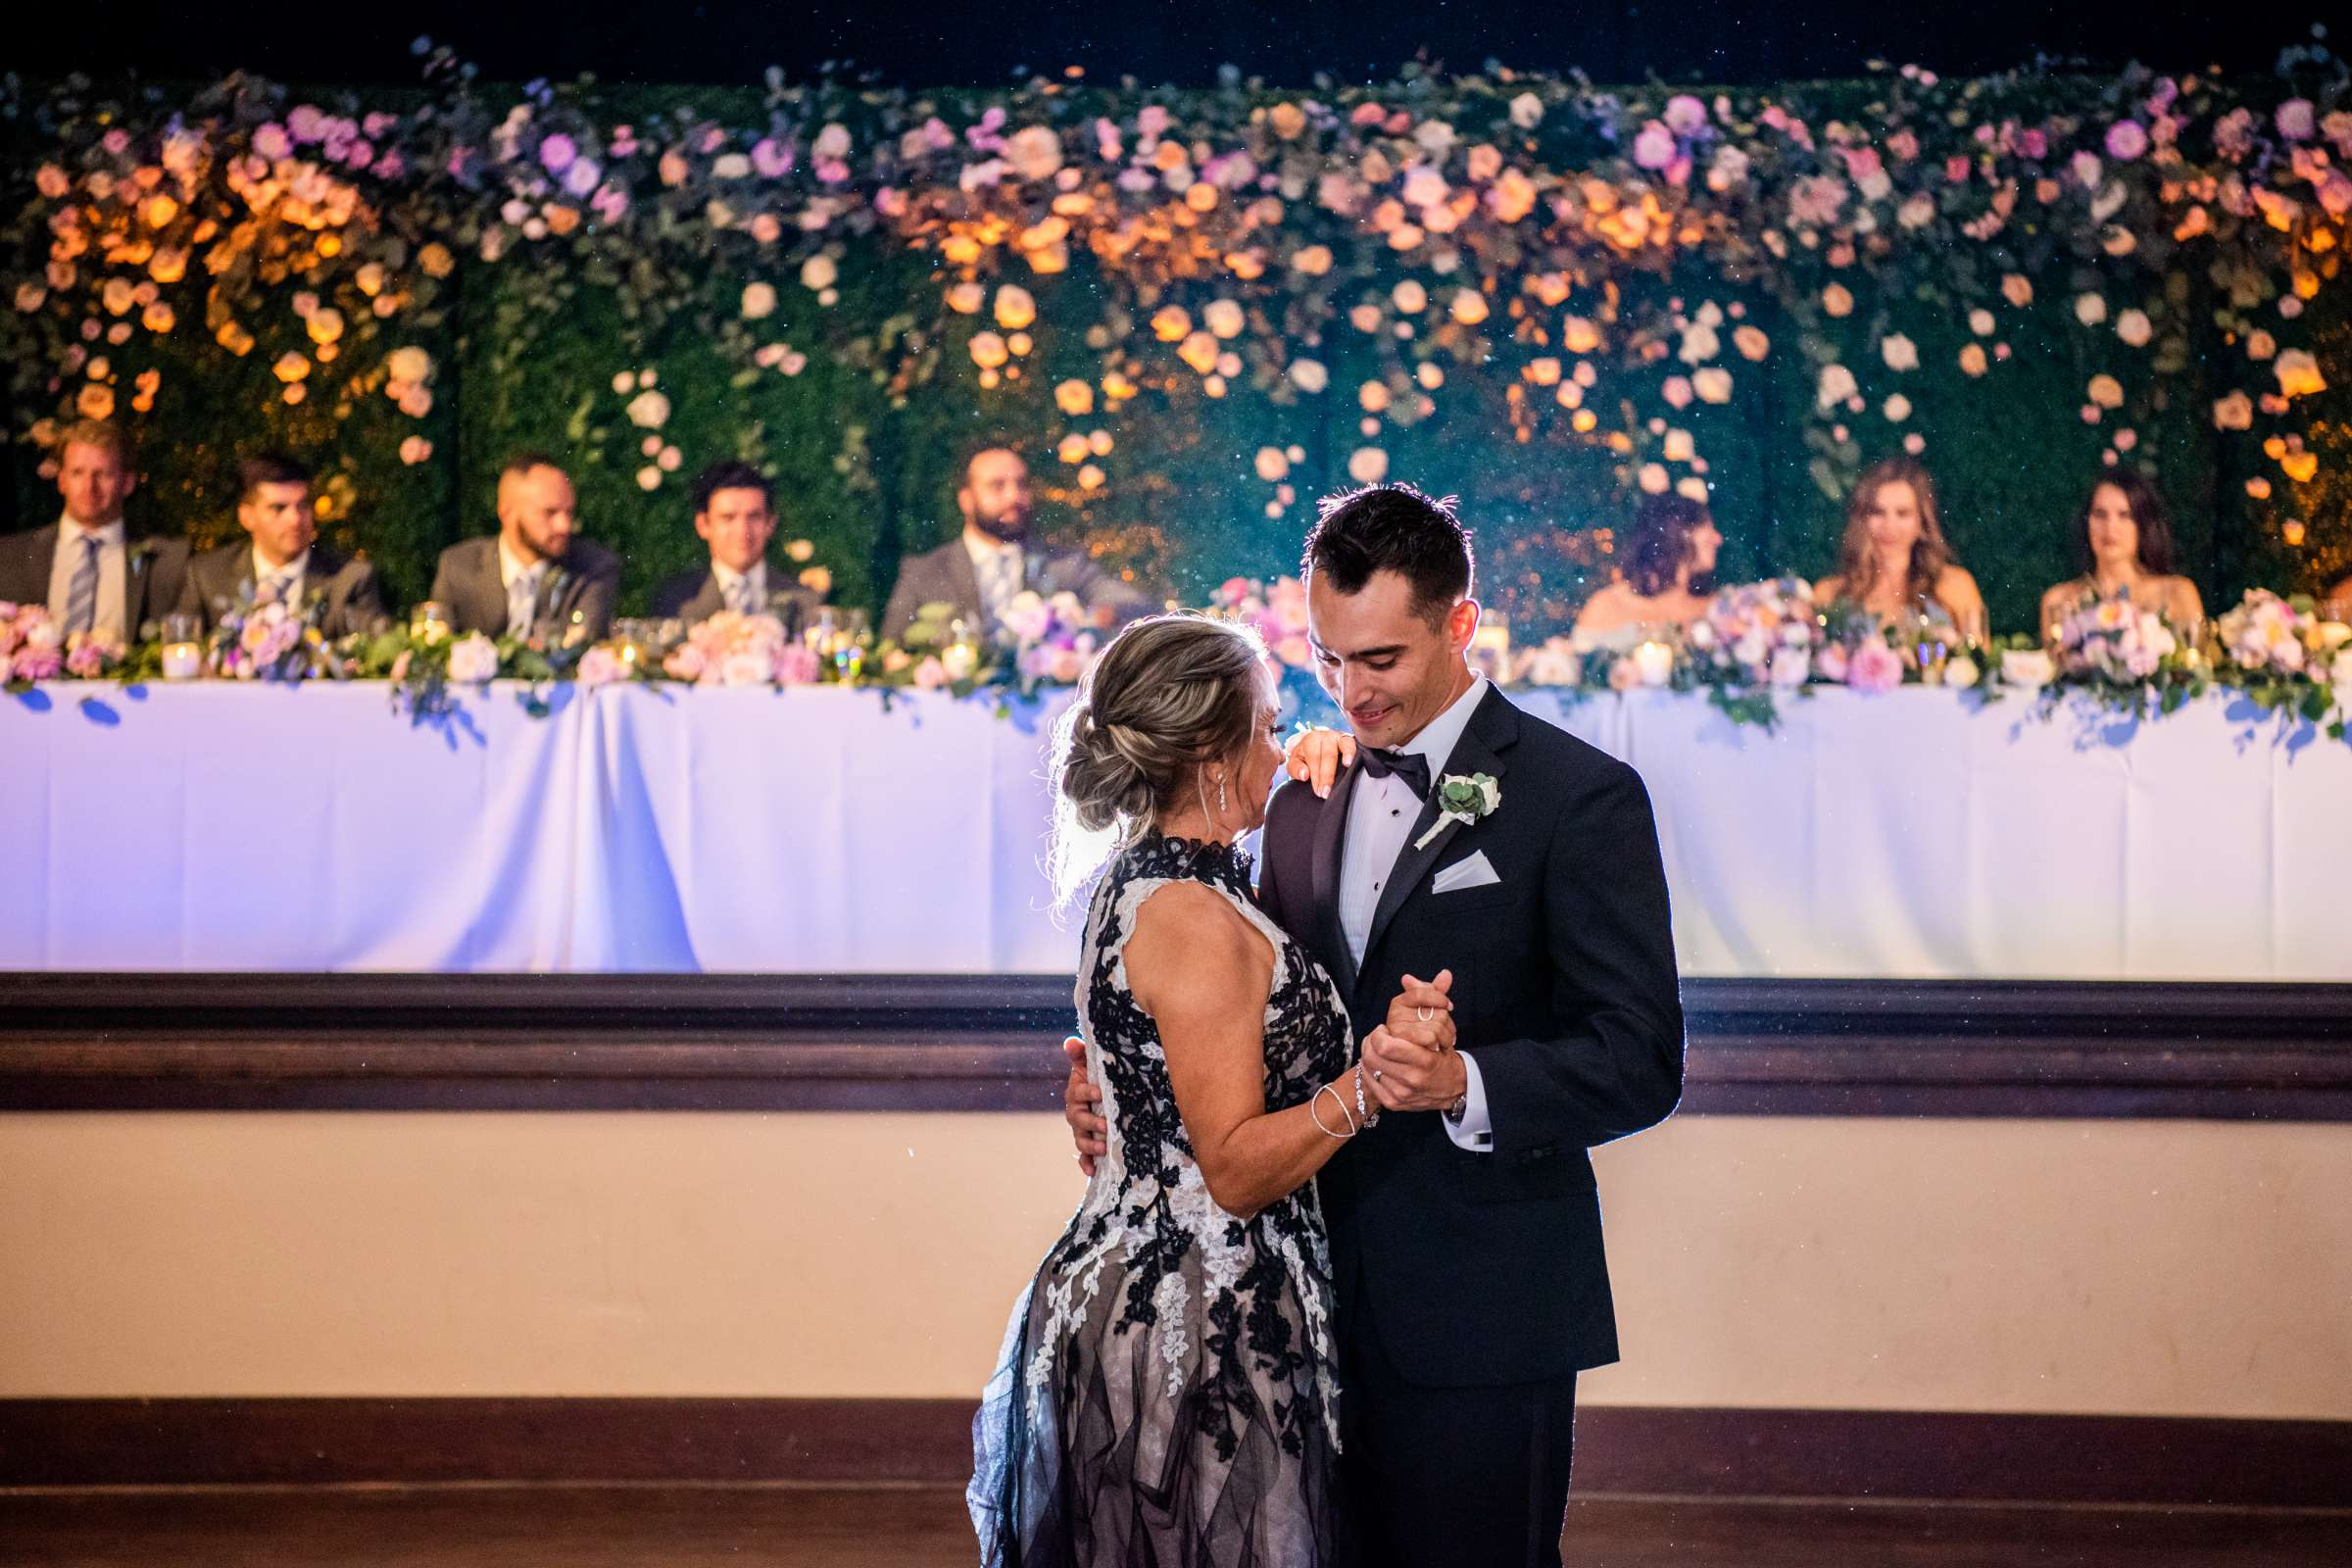 The Prado Wedding coordinated by Bliss Events, Sara and Marvin Wedding Photo #559635 by True Photography